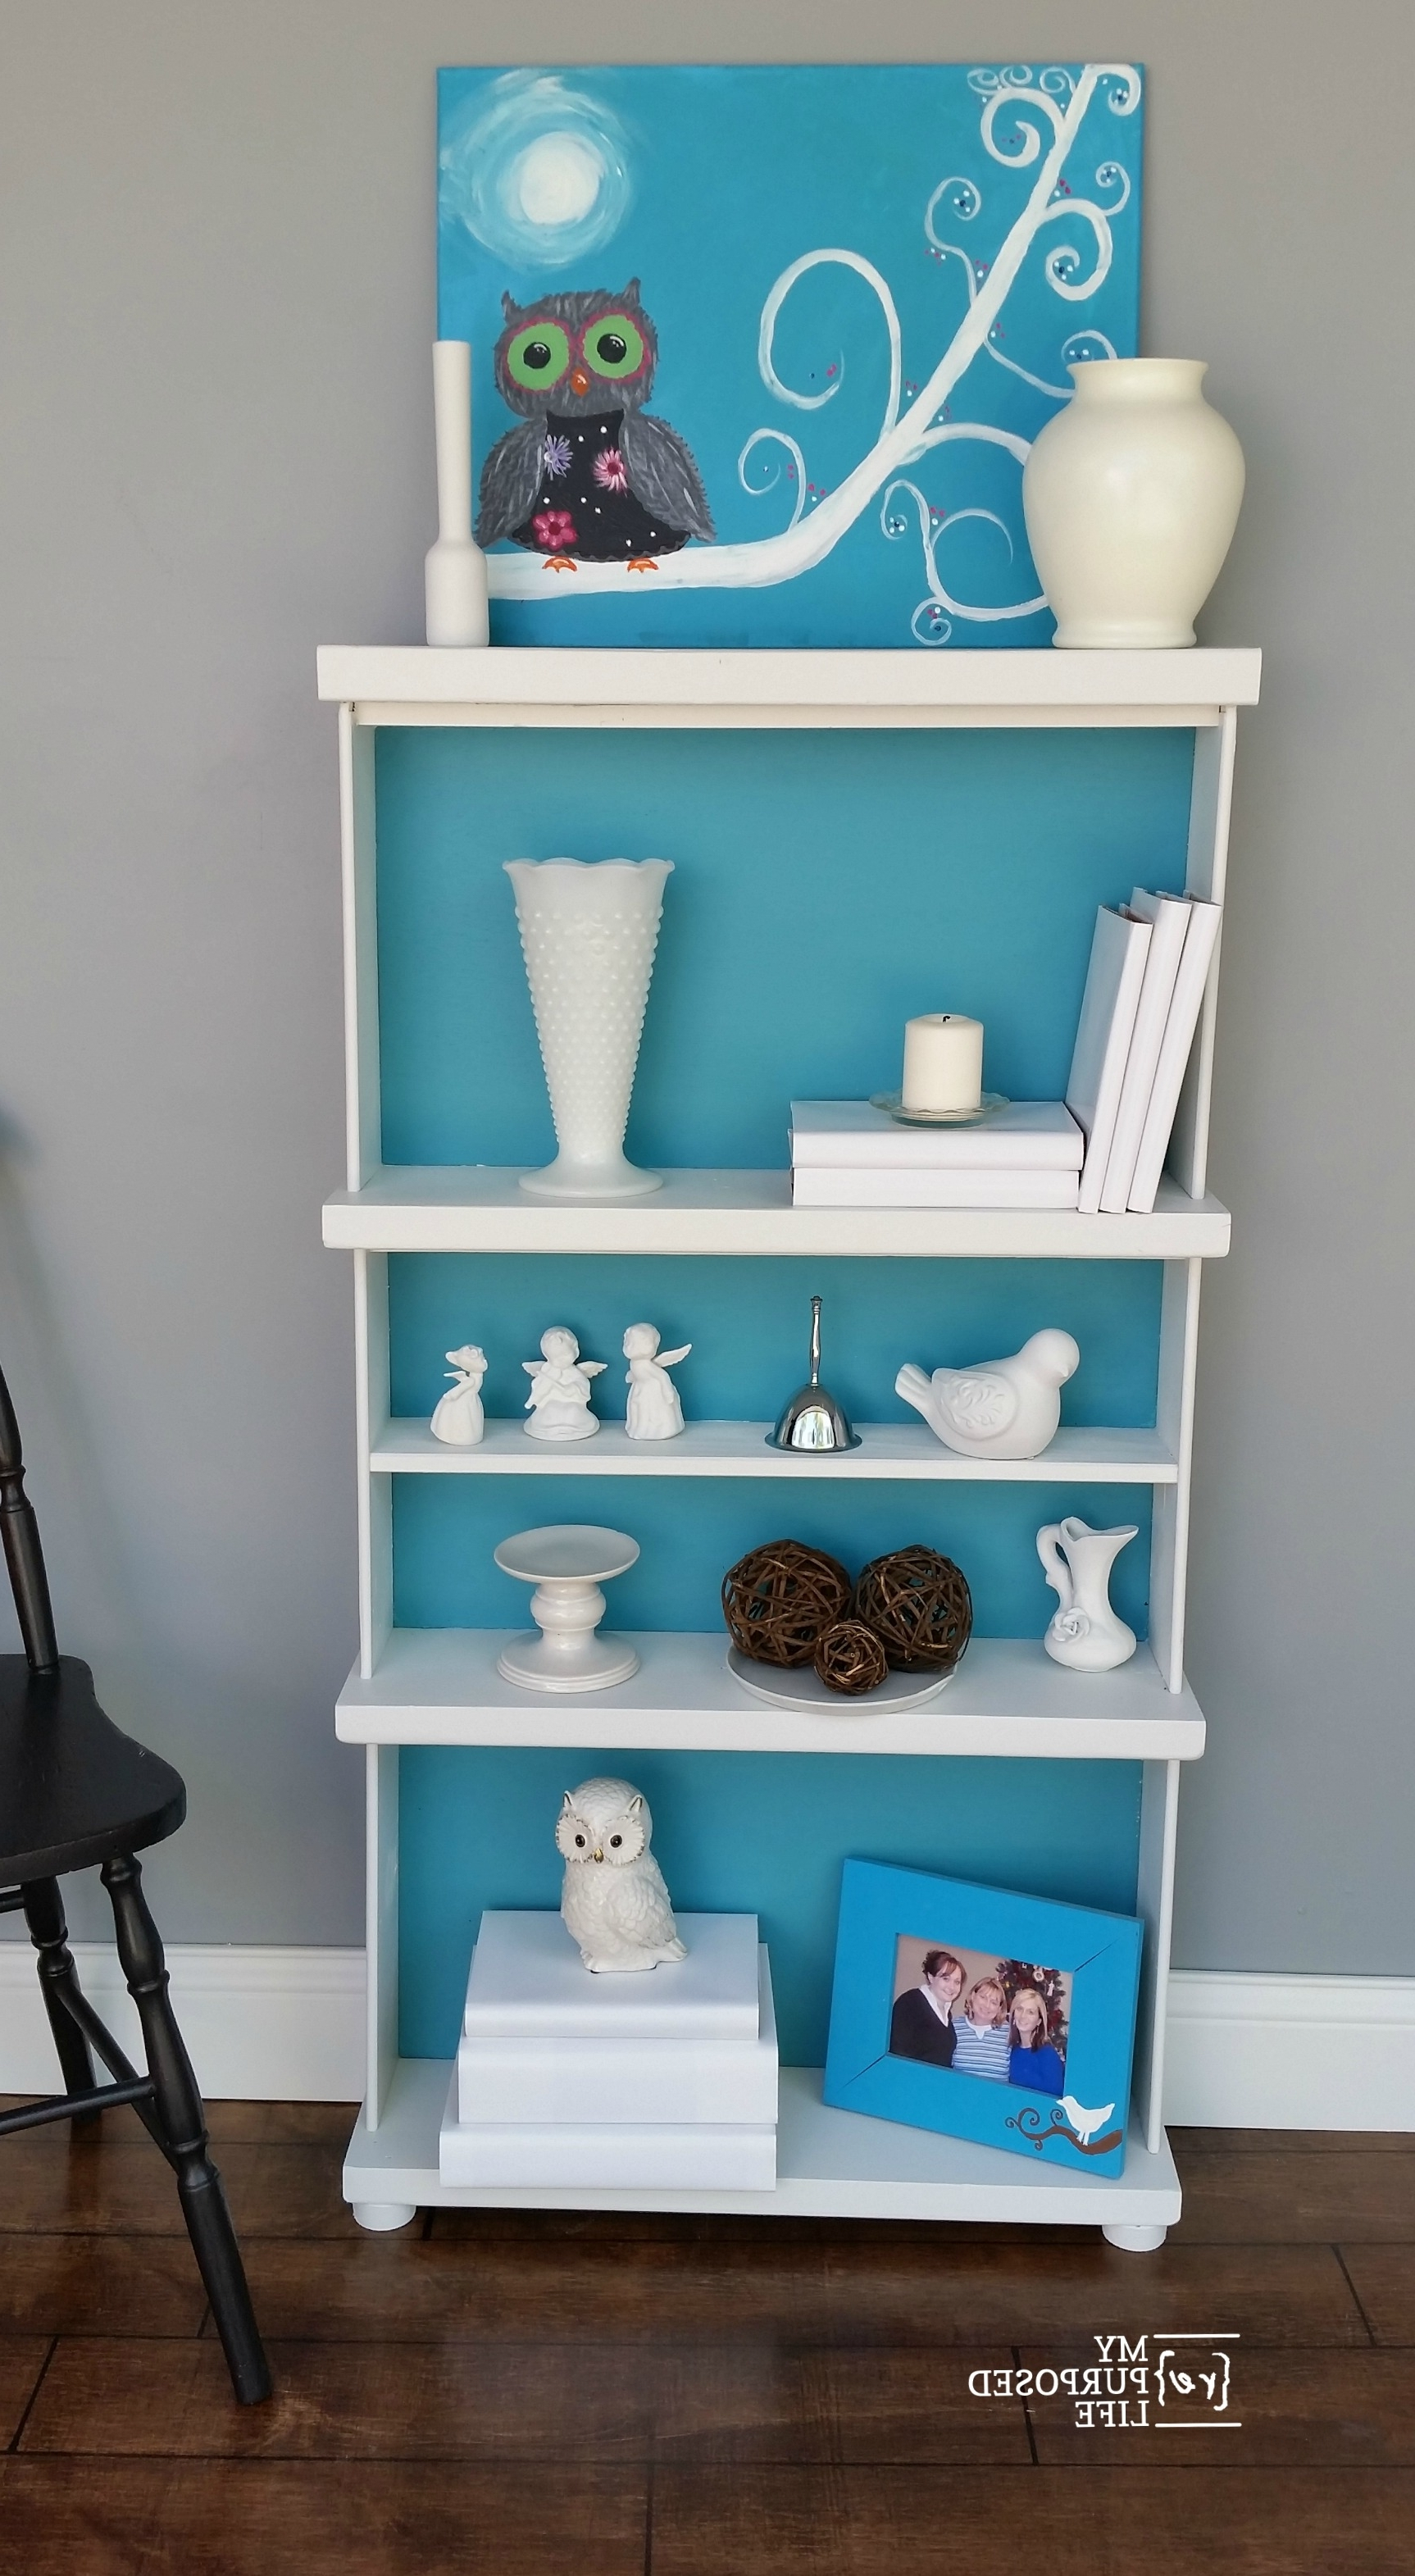 for also of bookshelf kidkraft ideas blue home interesting airplane cosy on dollhouse captivating toys furniture games bookcase